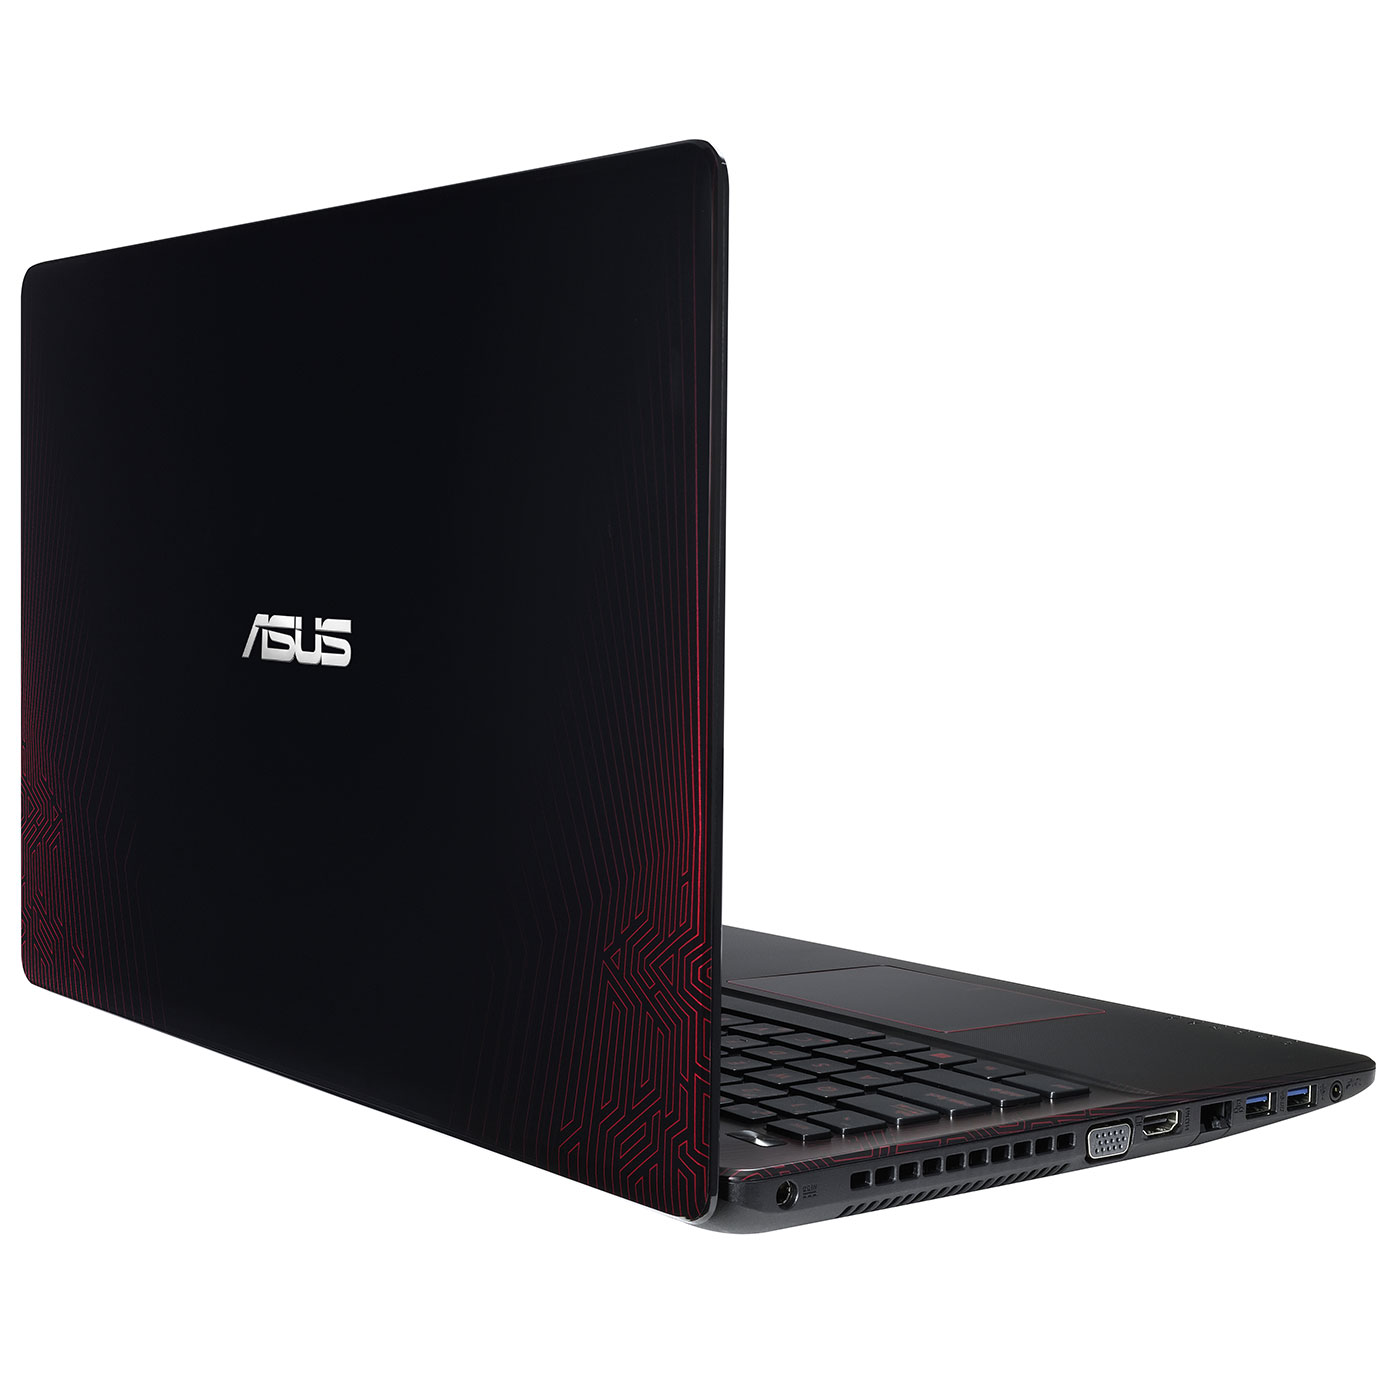 asus r510jx dm225t pc portable asus sur. Black Bedroom Furniture Sets. Home Design Ideas